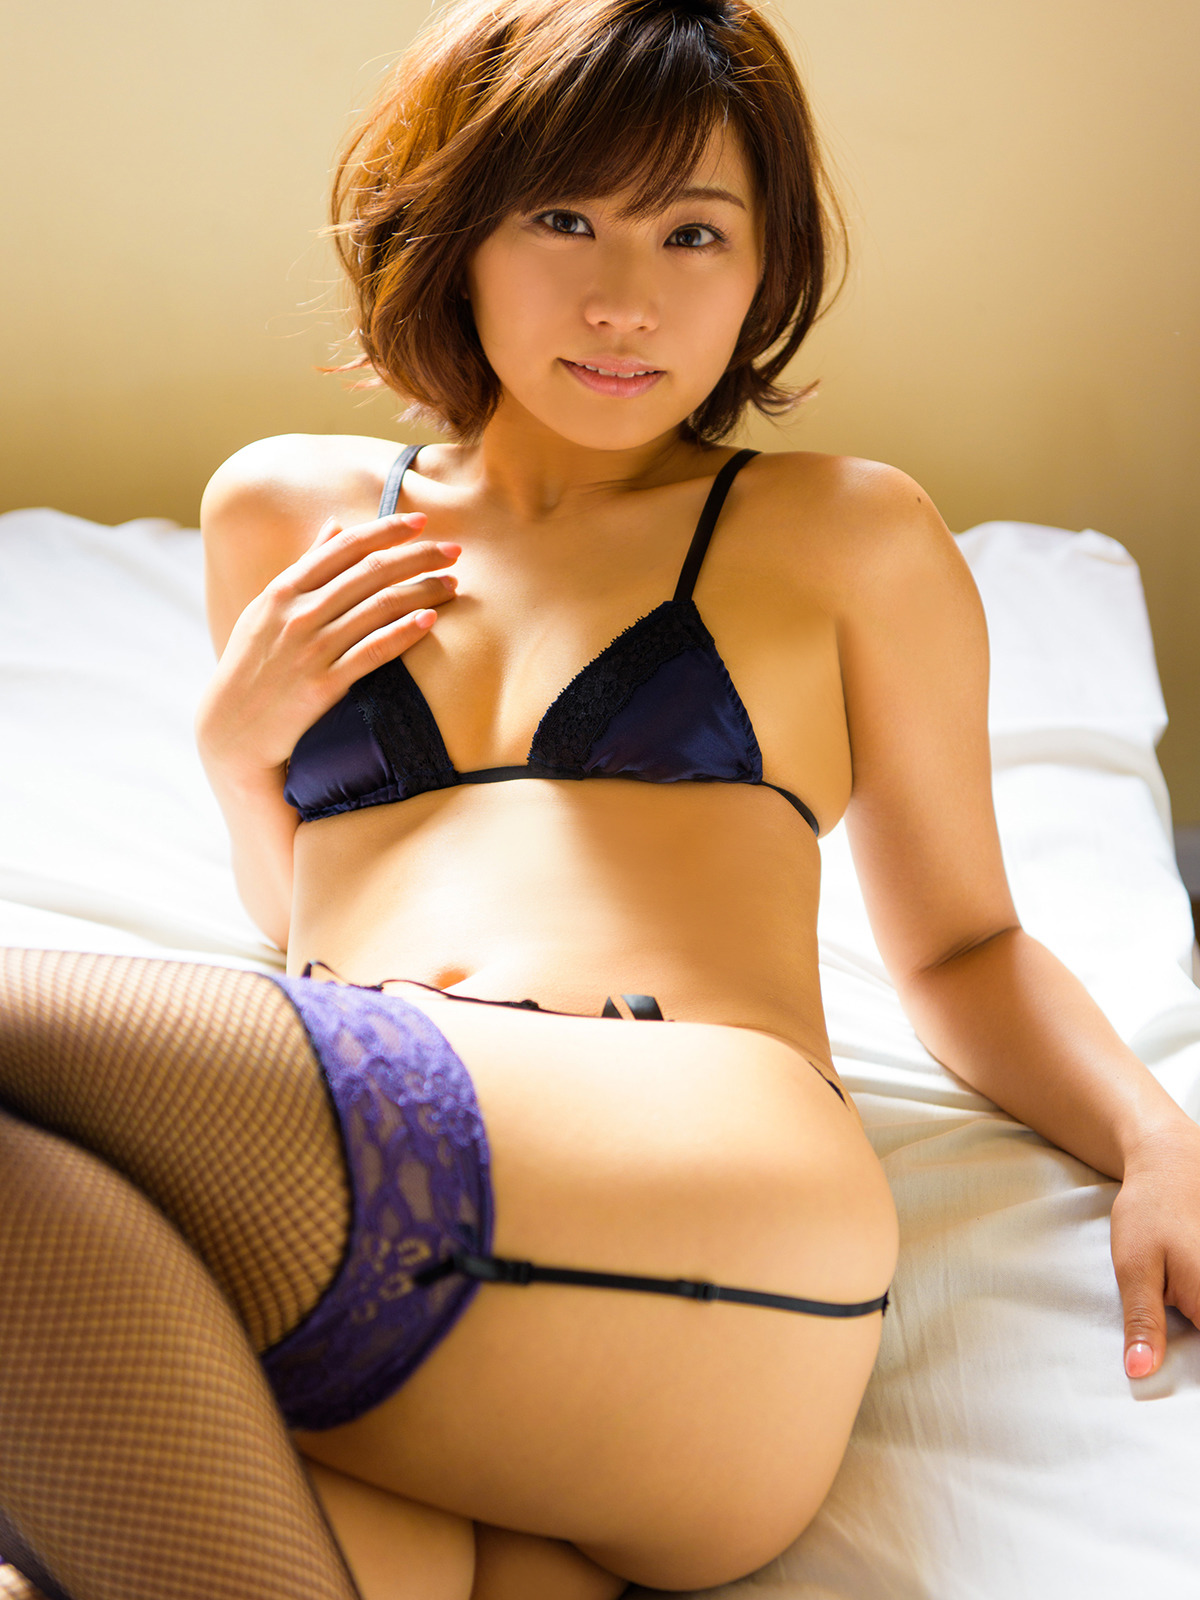 Scanlover Asian 63